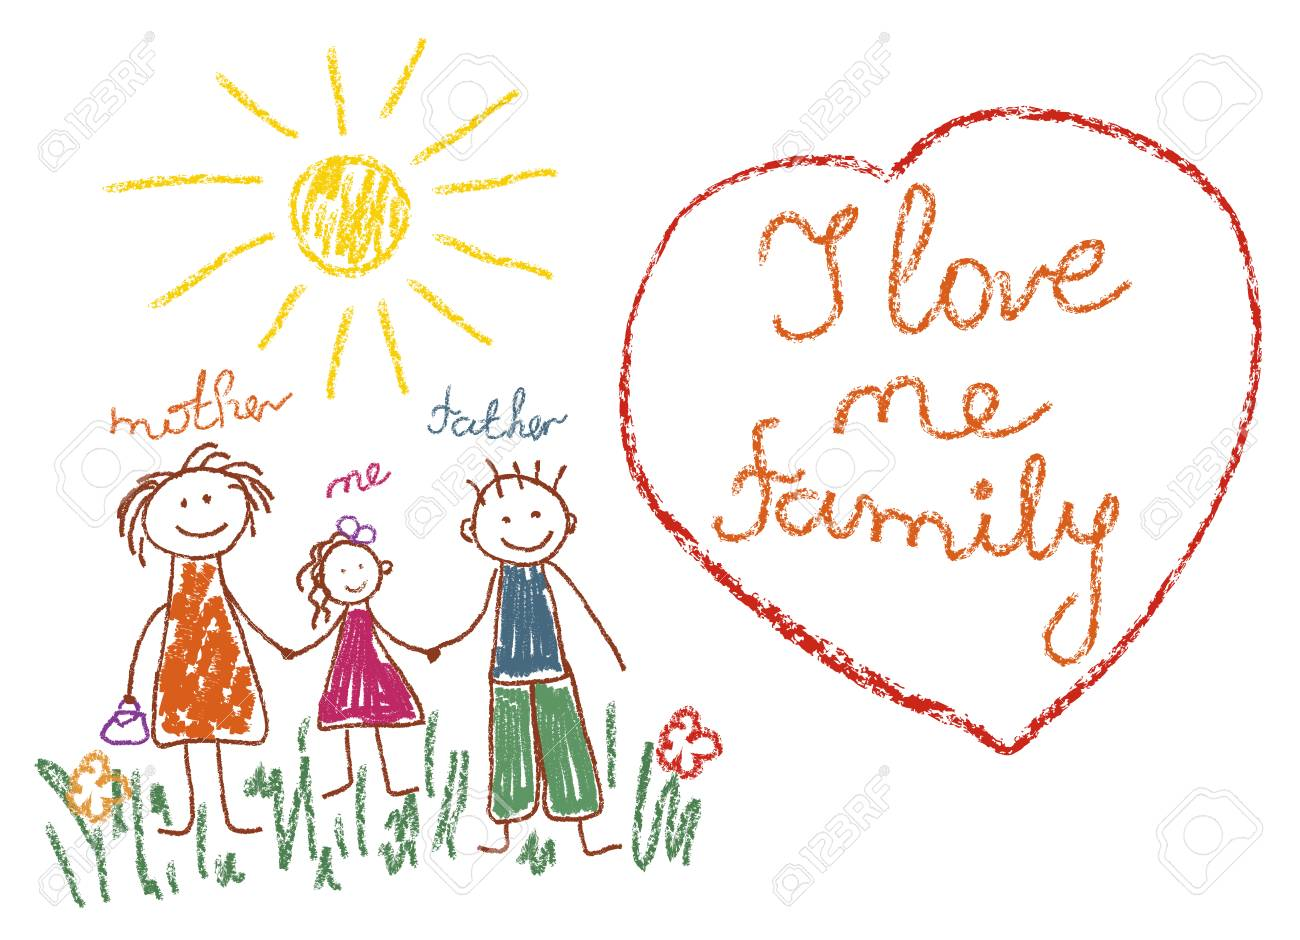 Children S Drawing With Pencils Family Mom Dad Me Heart With Stock Photo Picture And Royalty Free Image Image 123281182